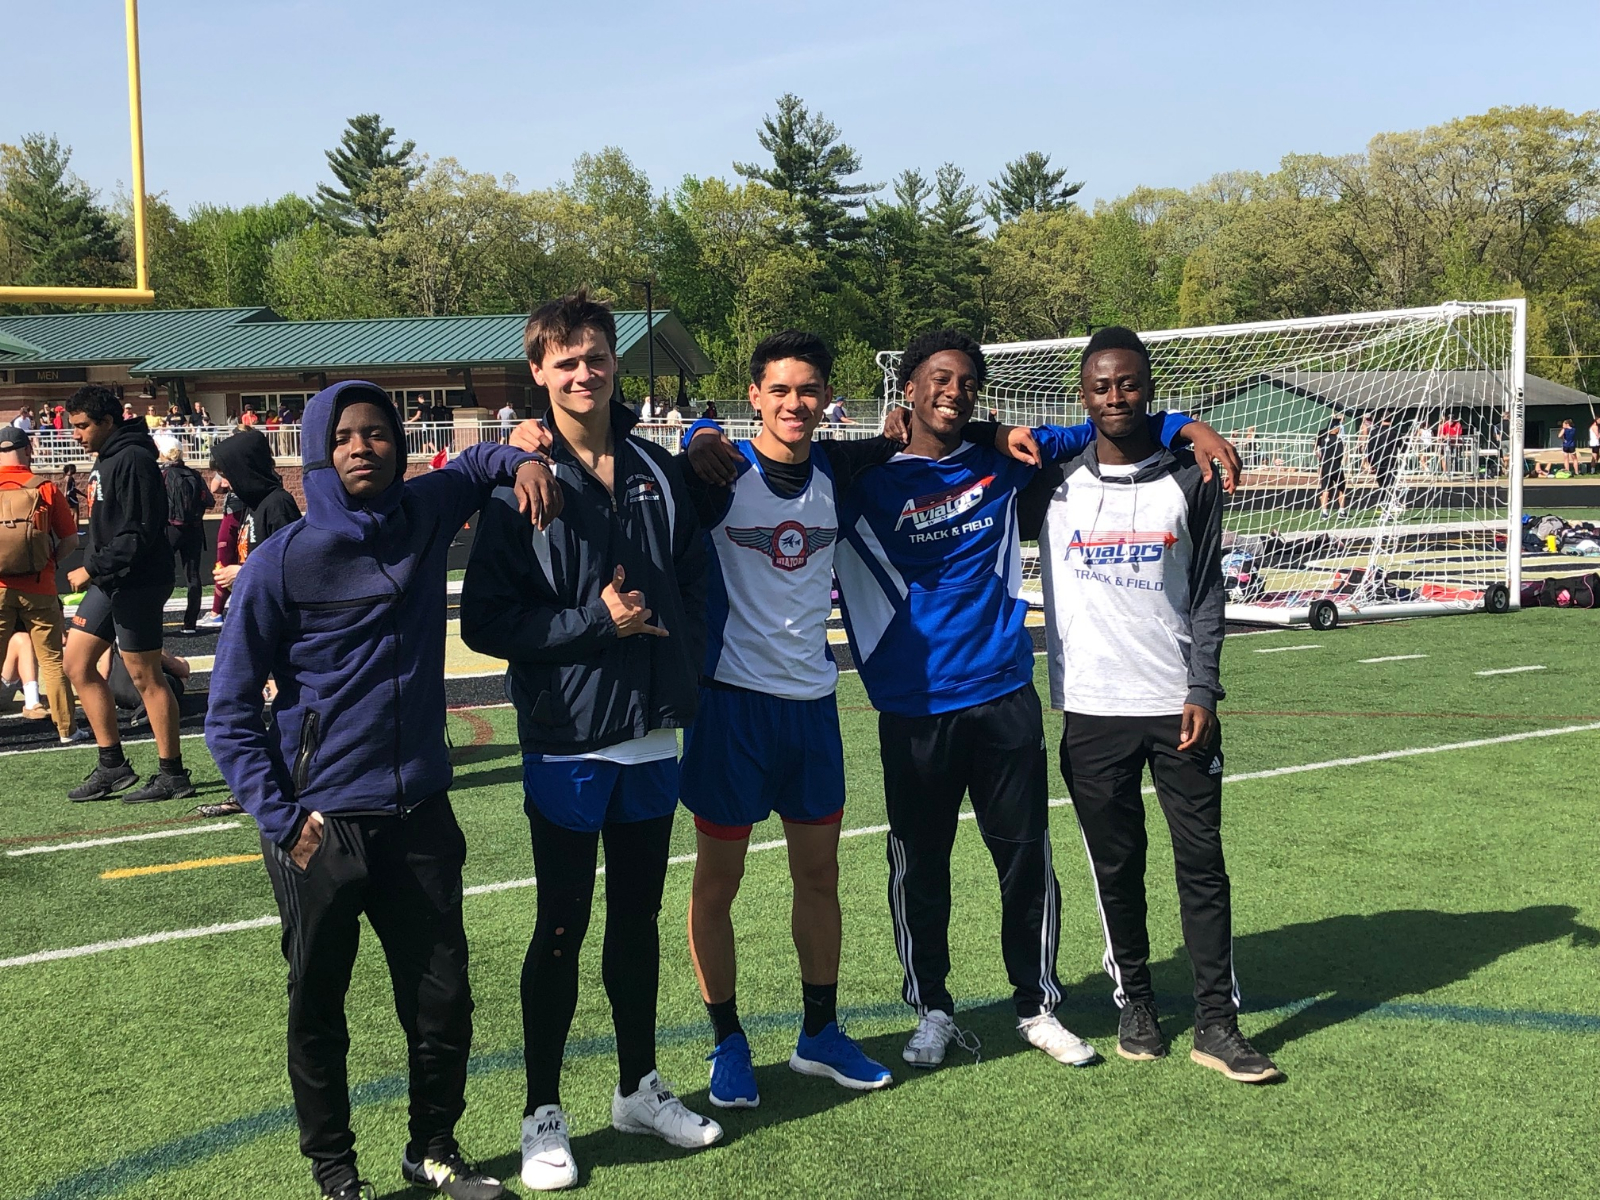 Former WMAA Track standouts Abdullahi and Abdiyow excelling at Aquinas